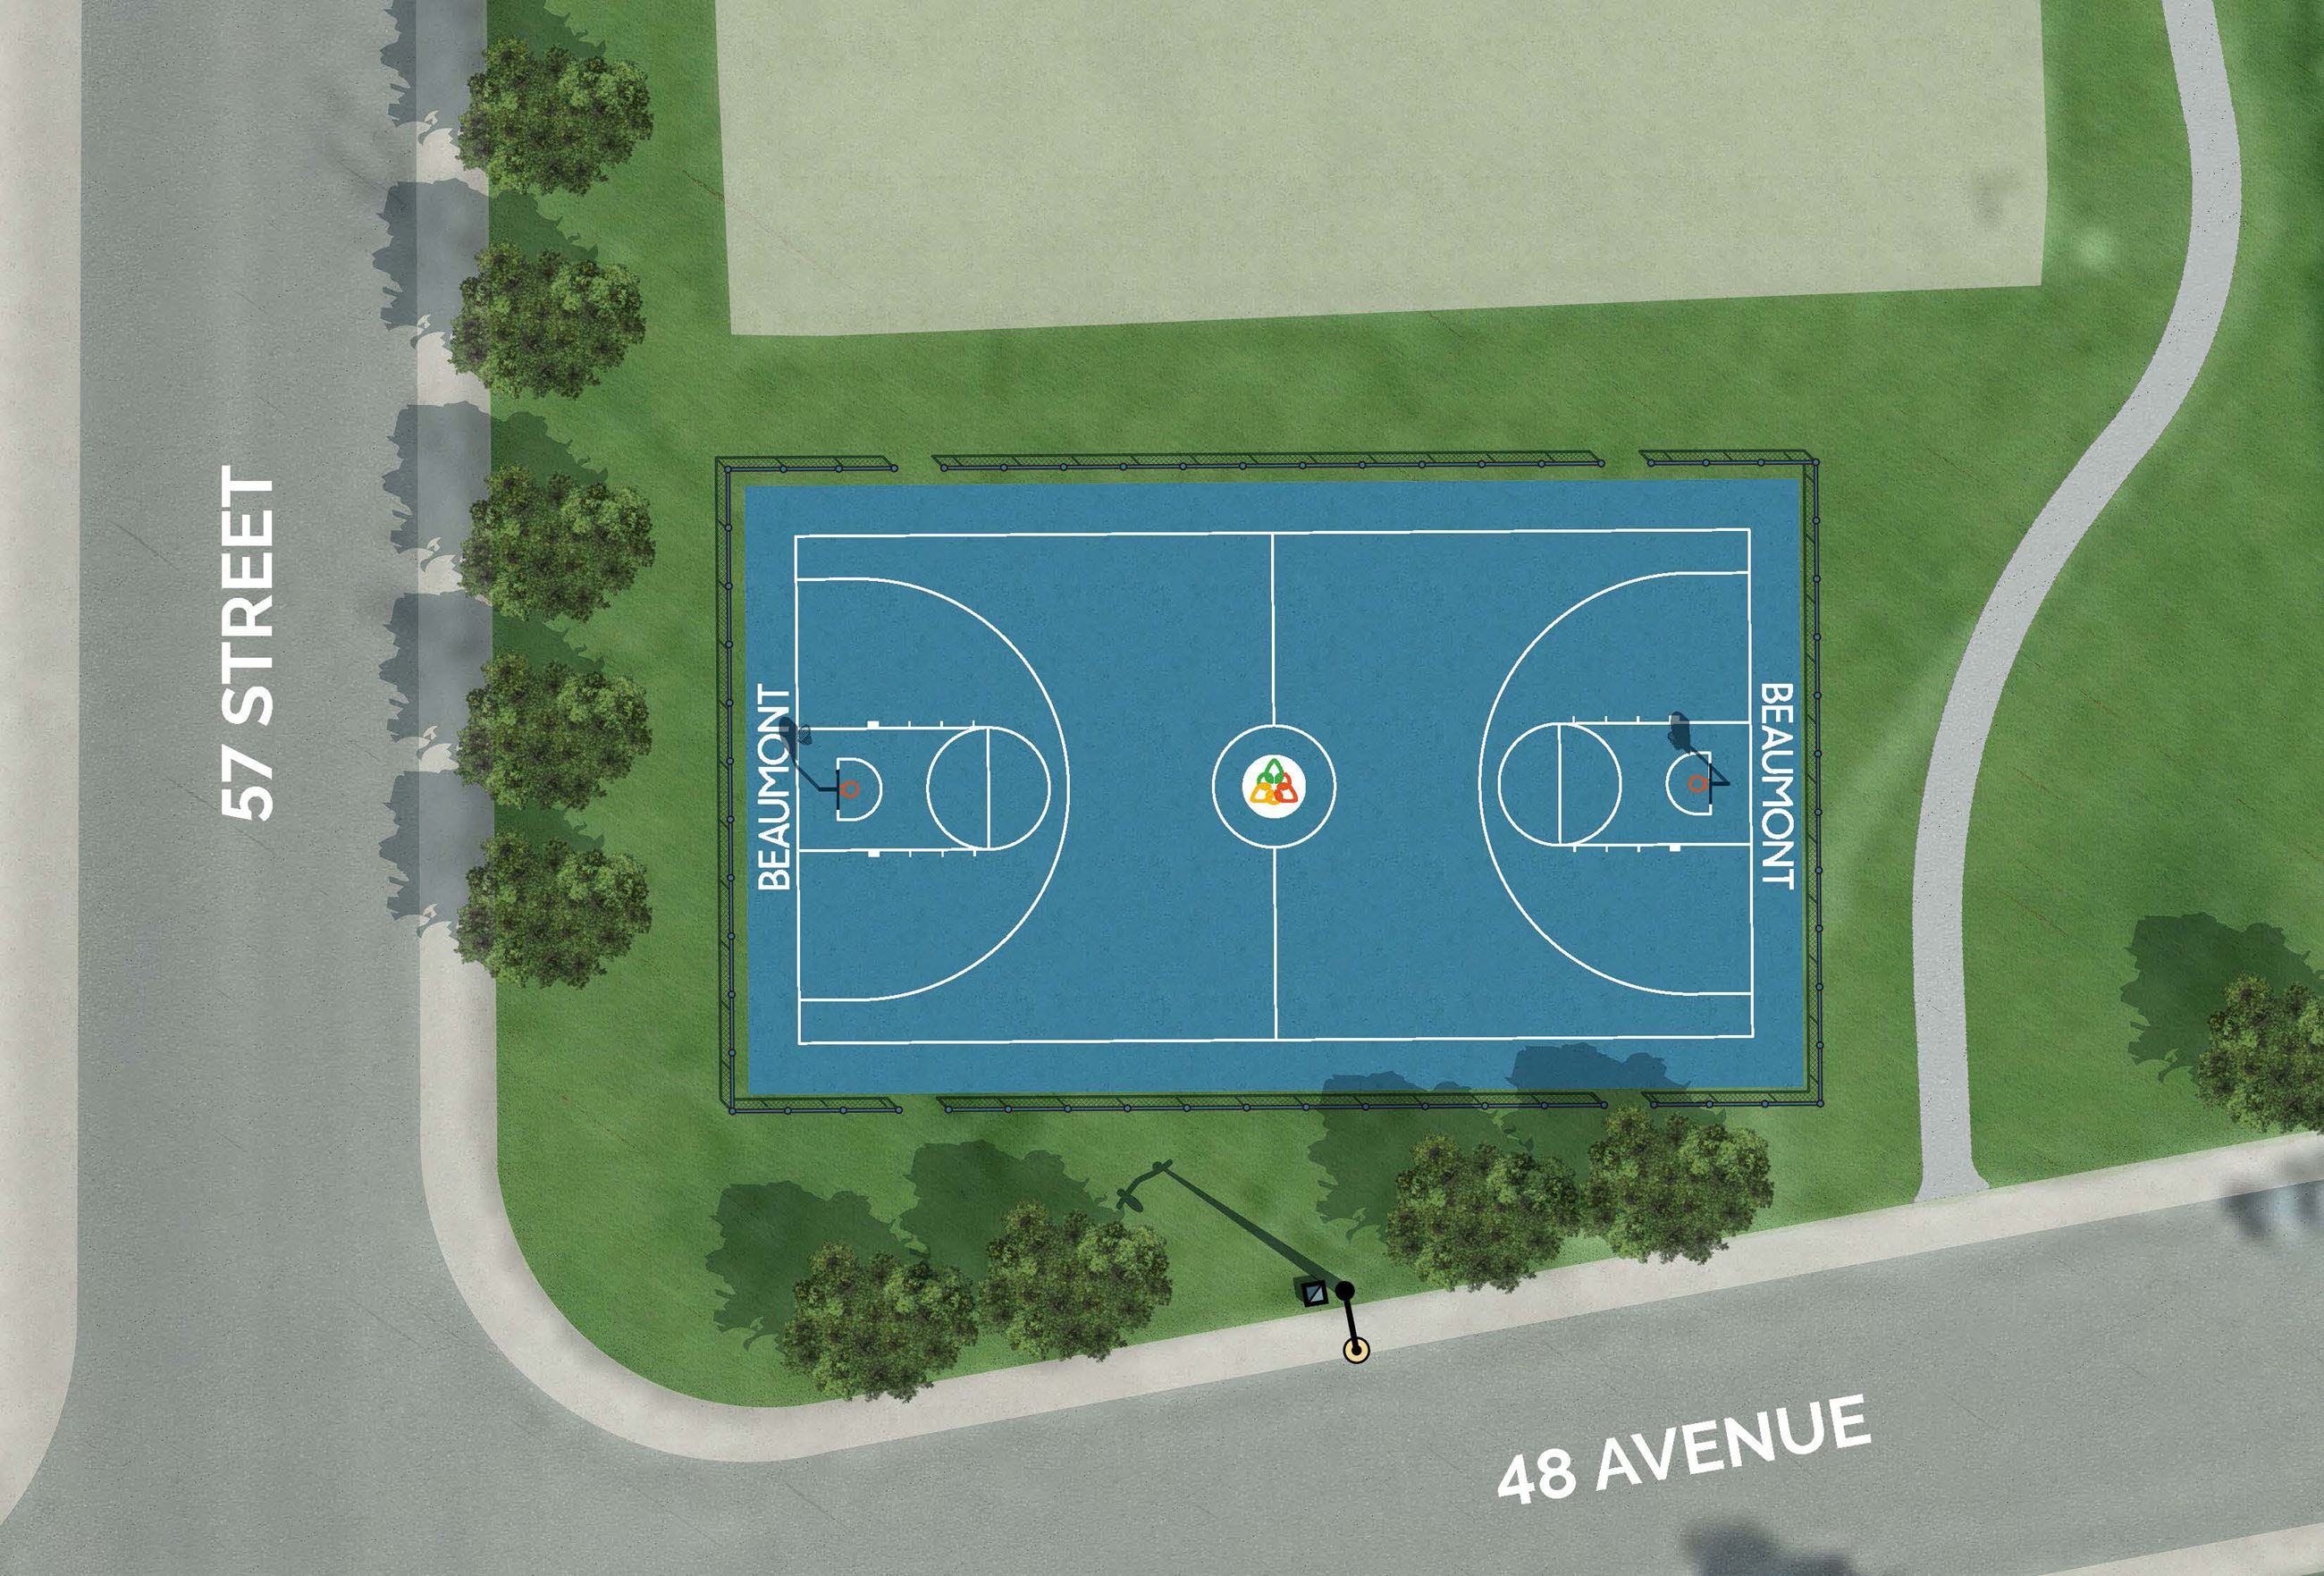 Proposed Basketball Court Location